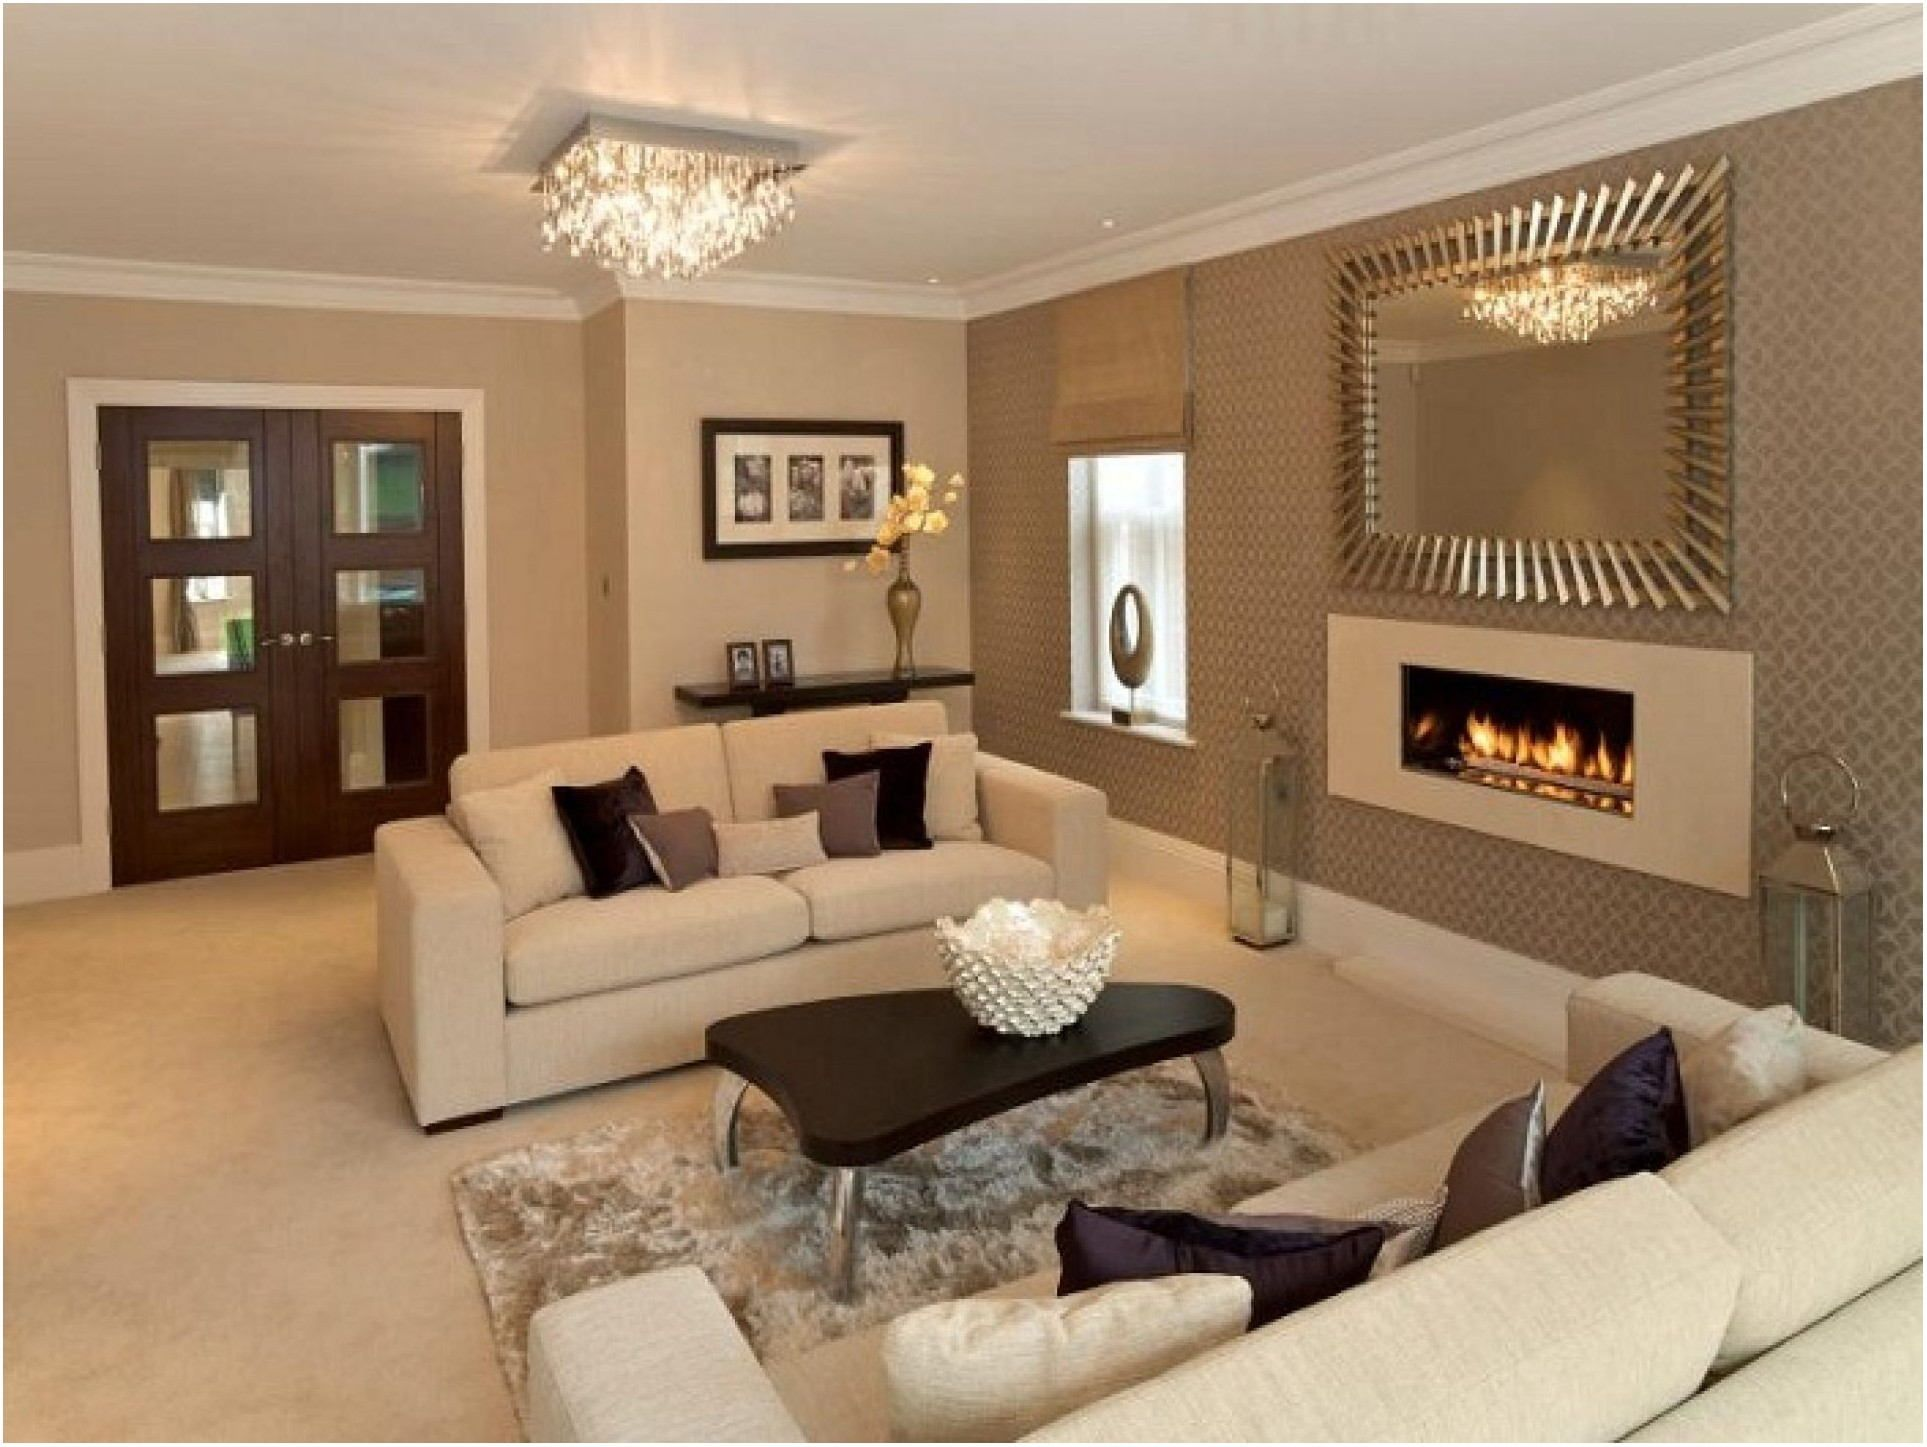 Tan Color Paint Living Room In 2020 Paint Colors For Living Room Tan Living Room Neutral Living Room Colors #tan #colors #for #living #room